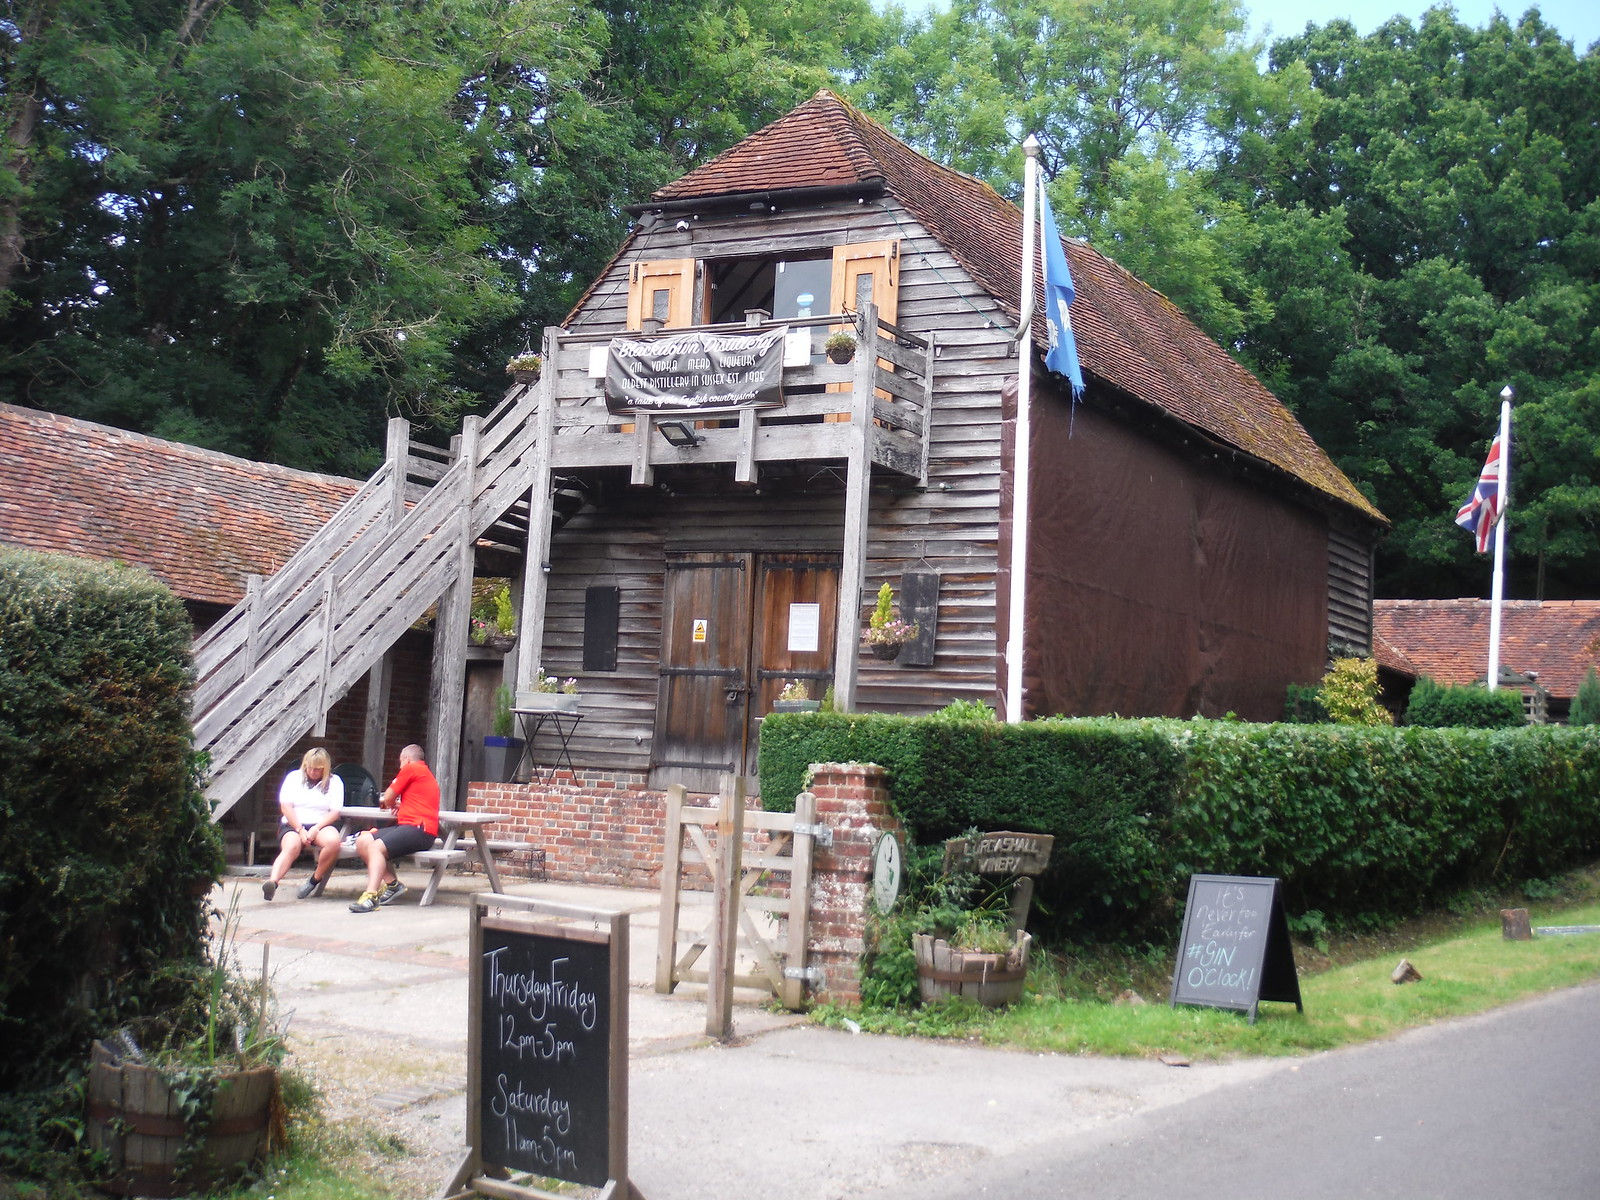 Lurgashall Winery/Blackdown Distillery's shop and café SWC Walk 48 Haslemere to Midhurst (via Lurgashall or Lickfold)